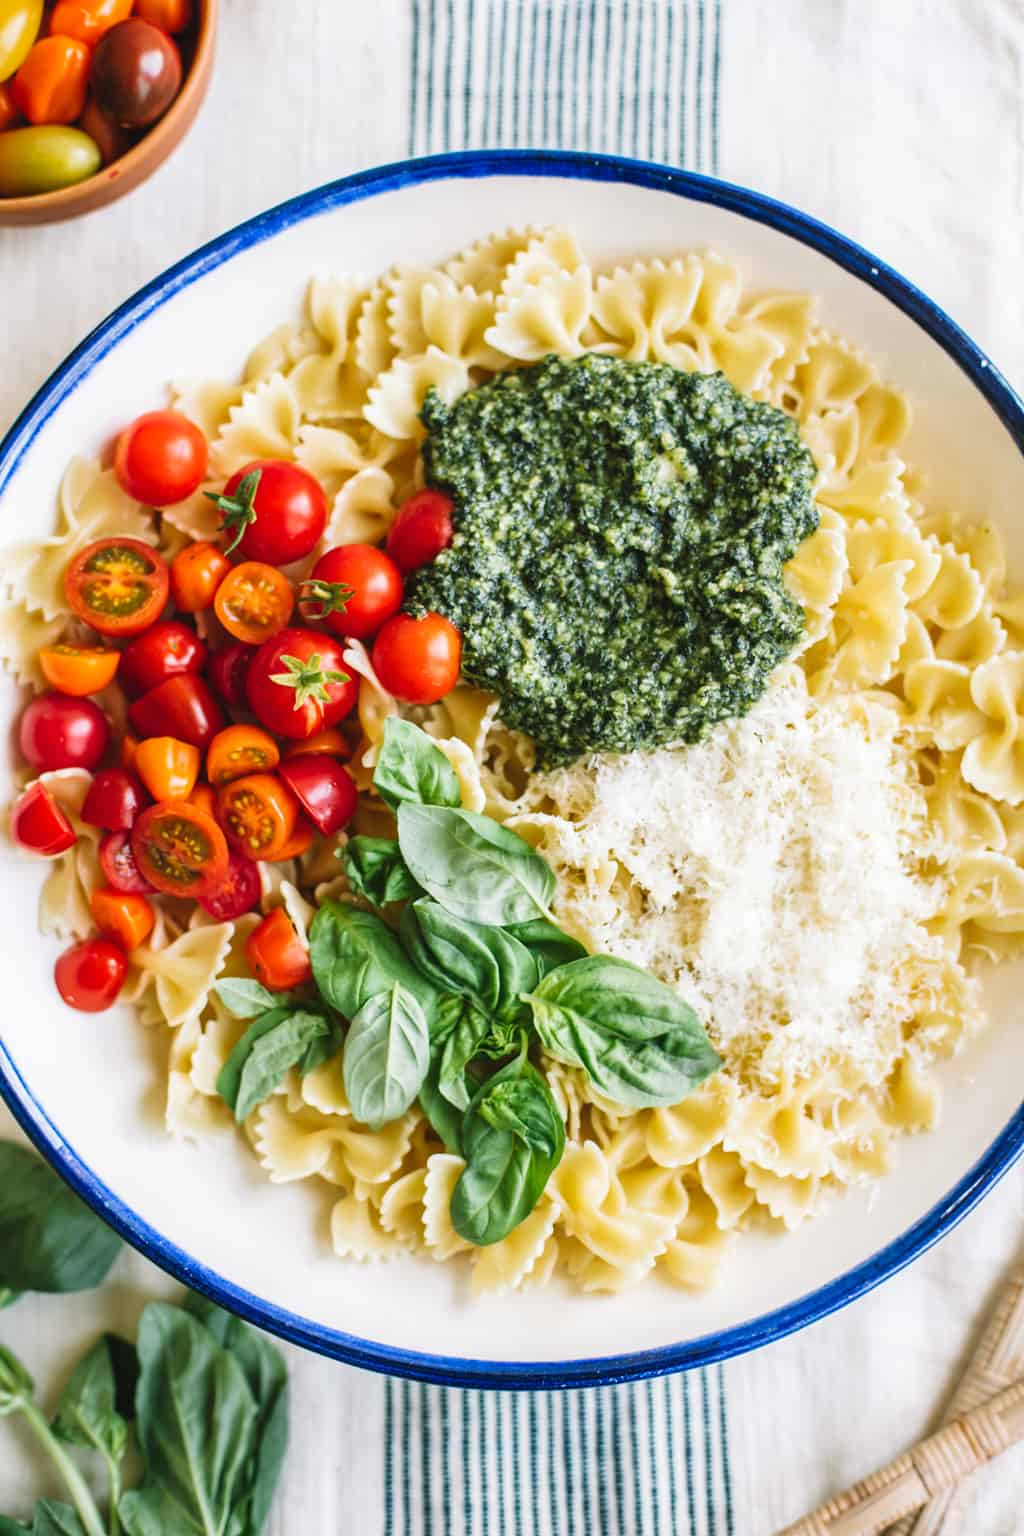 Pasta, pesto, tomatoes, Parmesan, and basil in a white bowl with blue rim